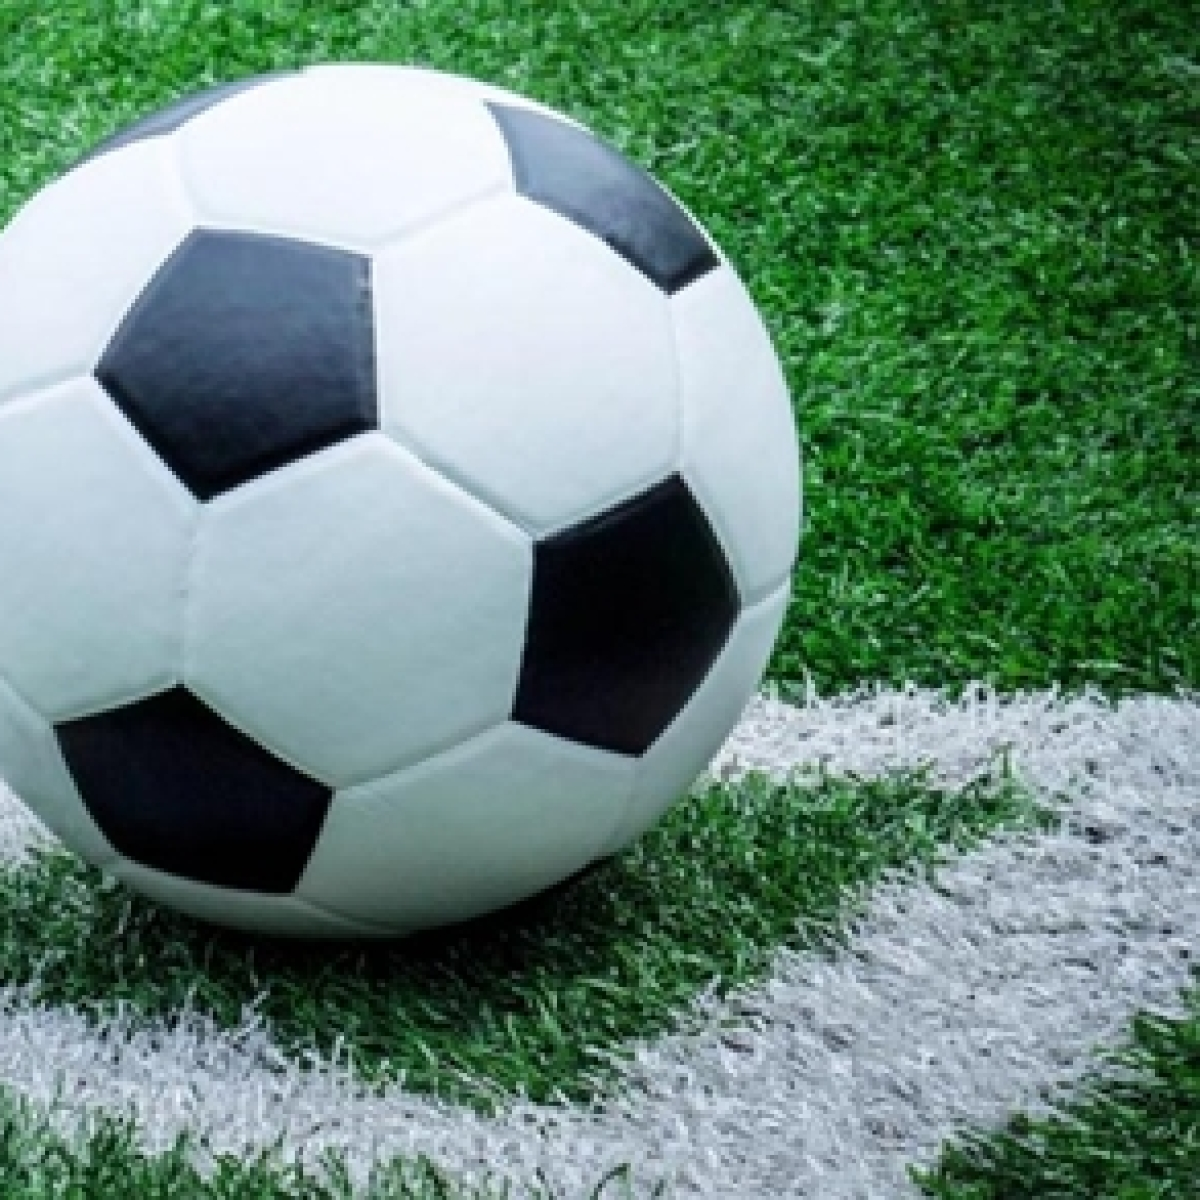 Air India Colony down Kalina United in Football League